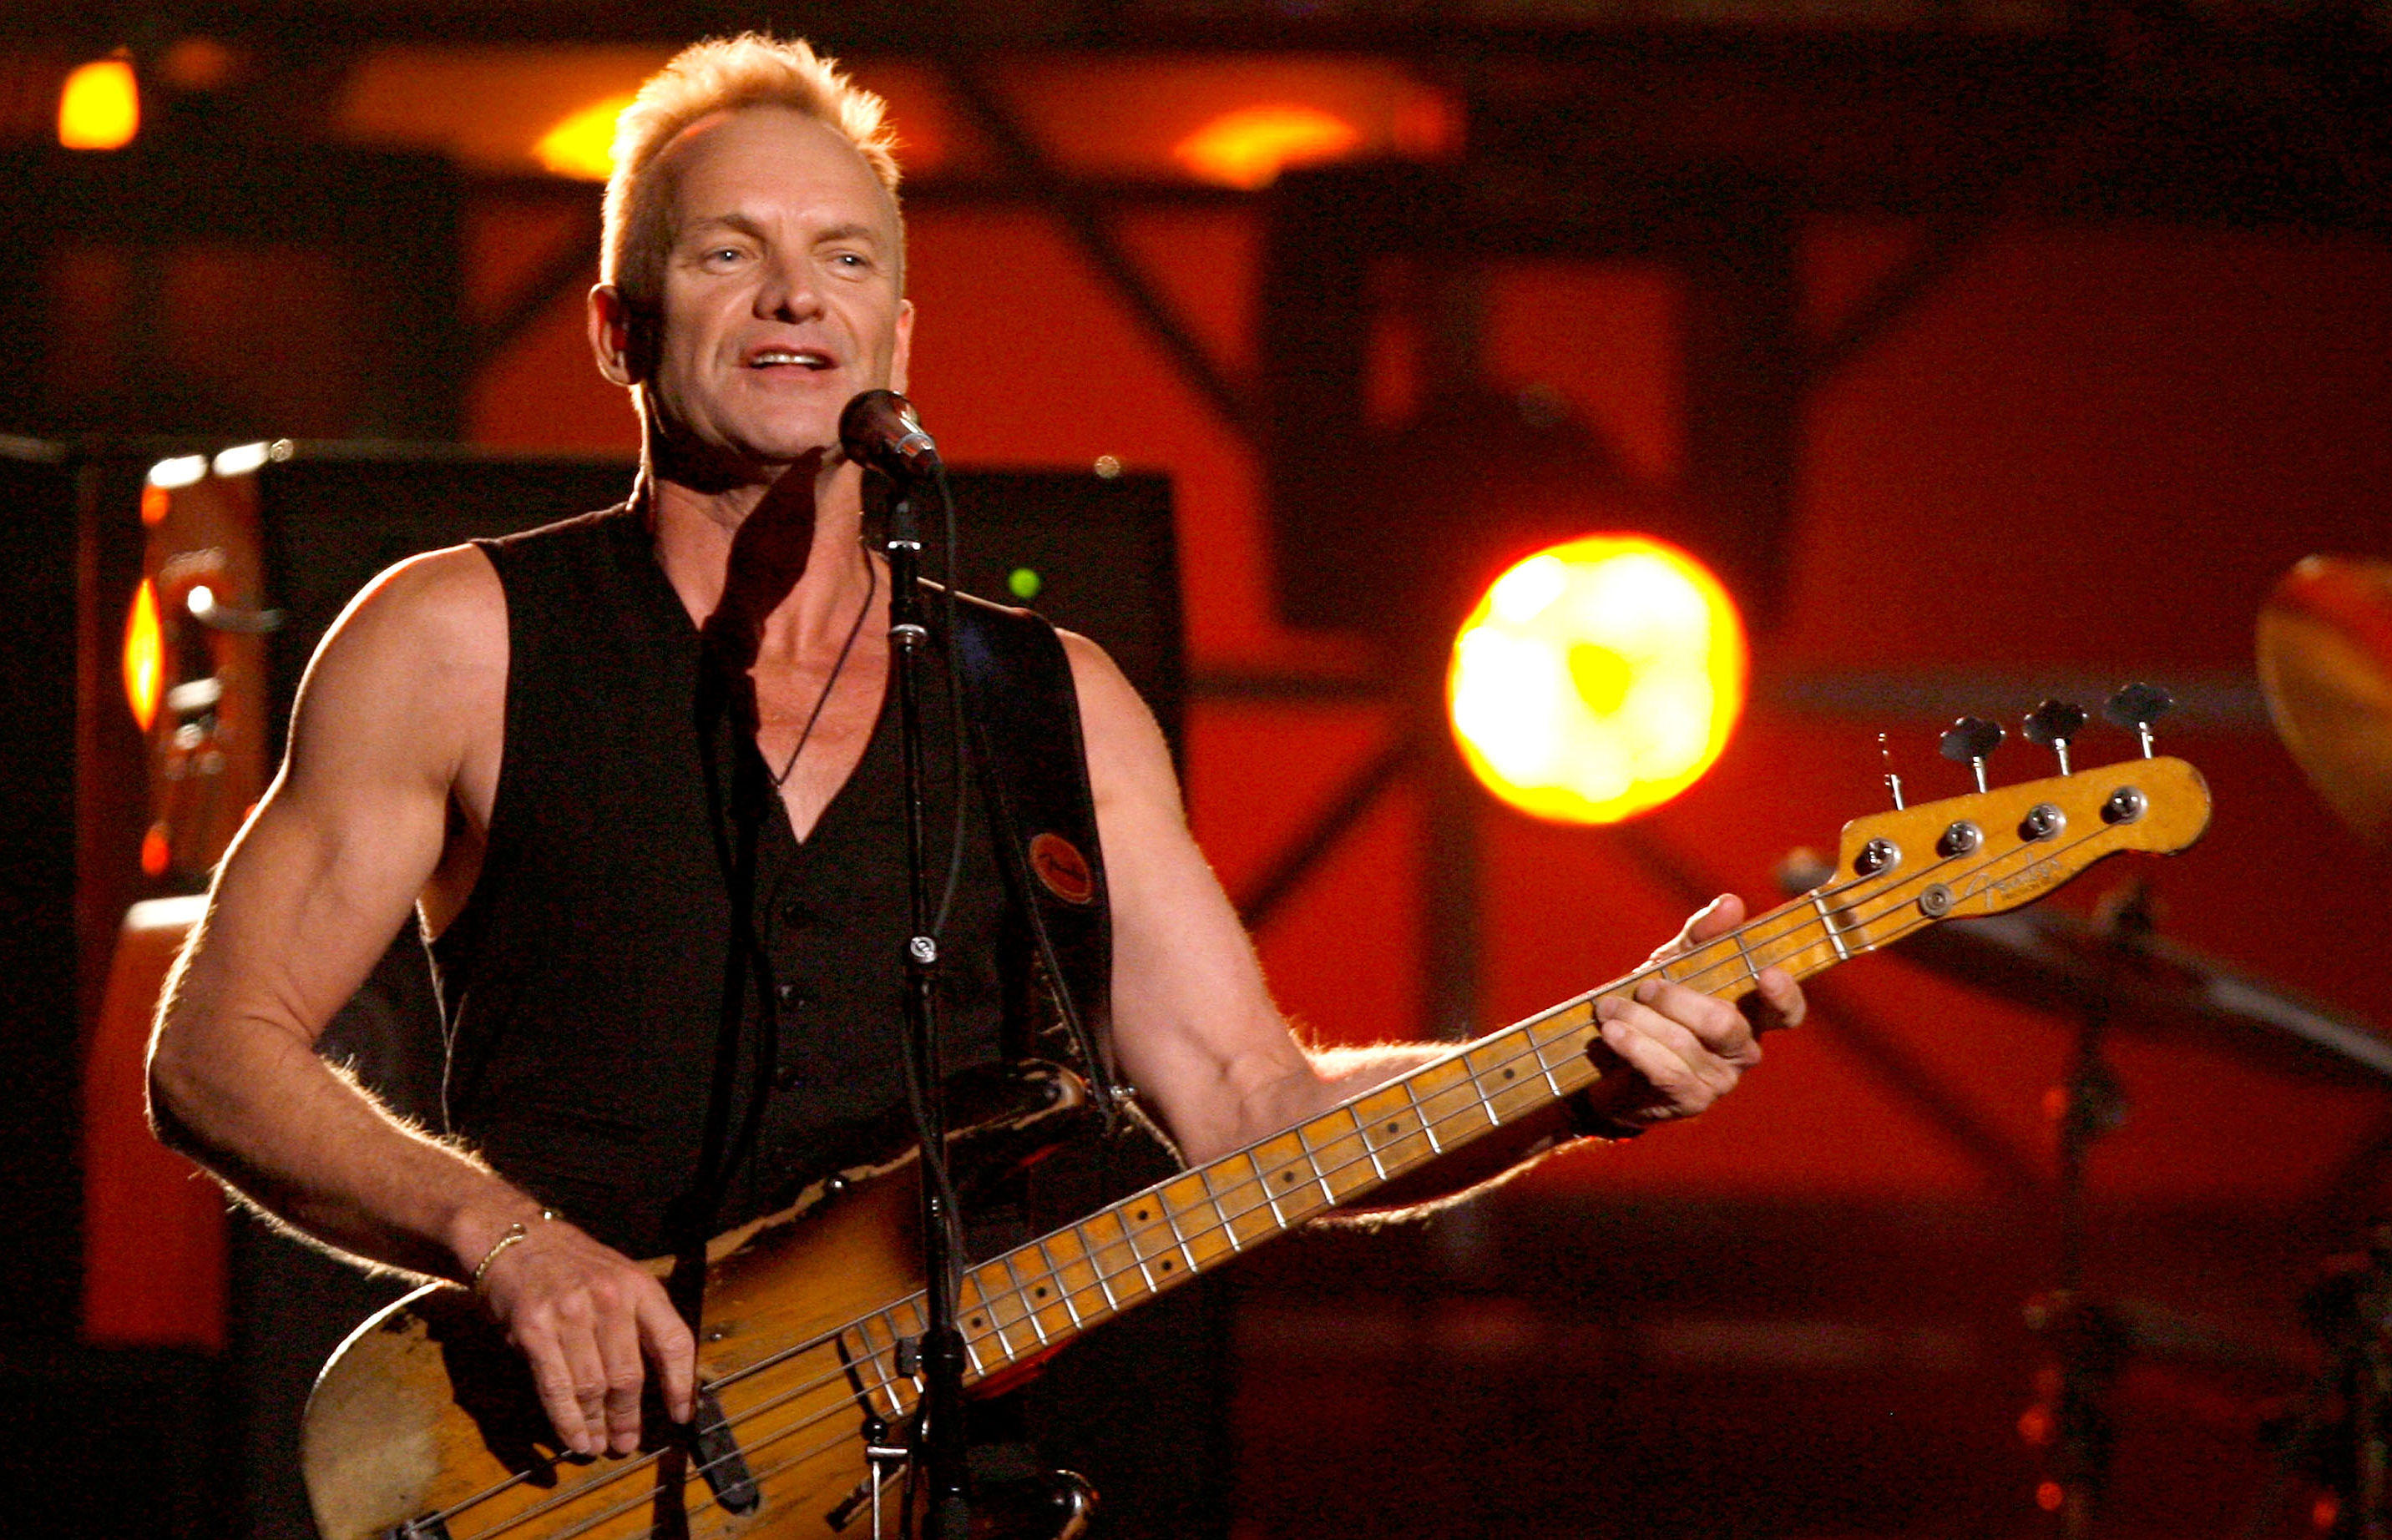 LOS ANGELES, CA - FEBRUARY 11: Musician Sting performs 'Roxanne' onstage with the band The Police opening the 49th Annual Grammy Awards at the Staples Center on February 11, 2007 in Los Angeles, California. (Photo by Kevin Winter/Getty Images)